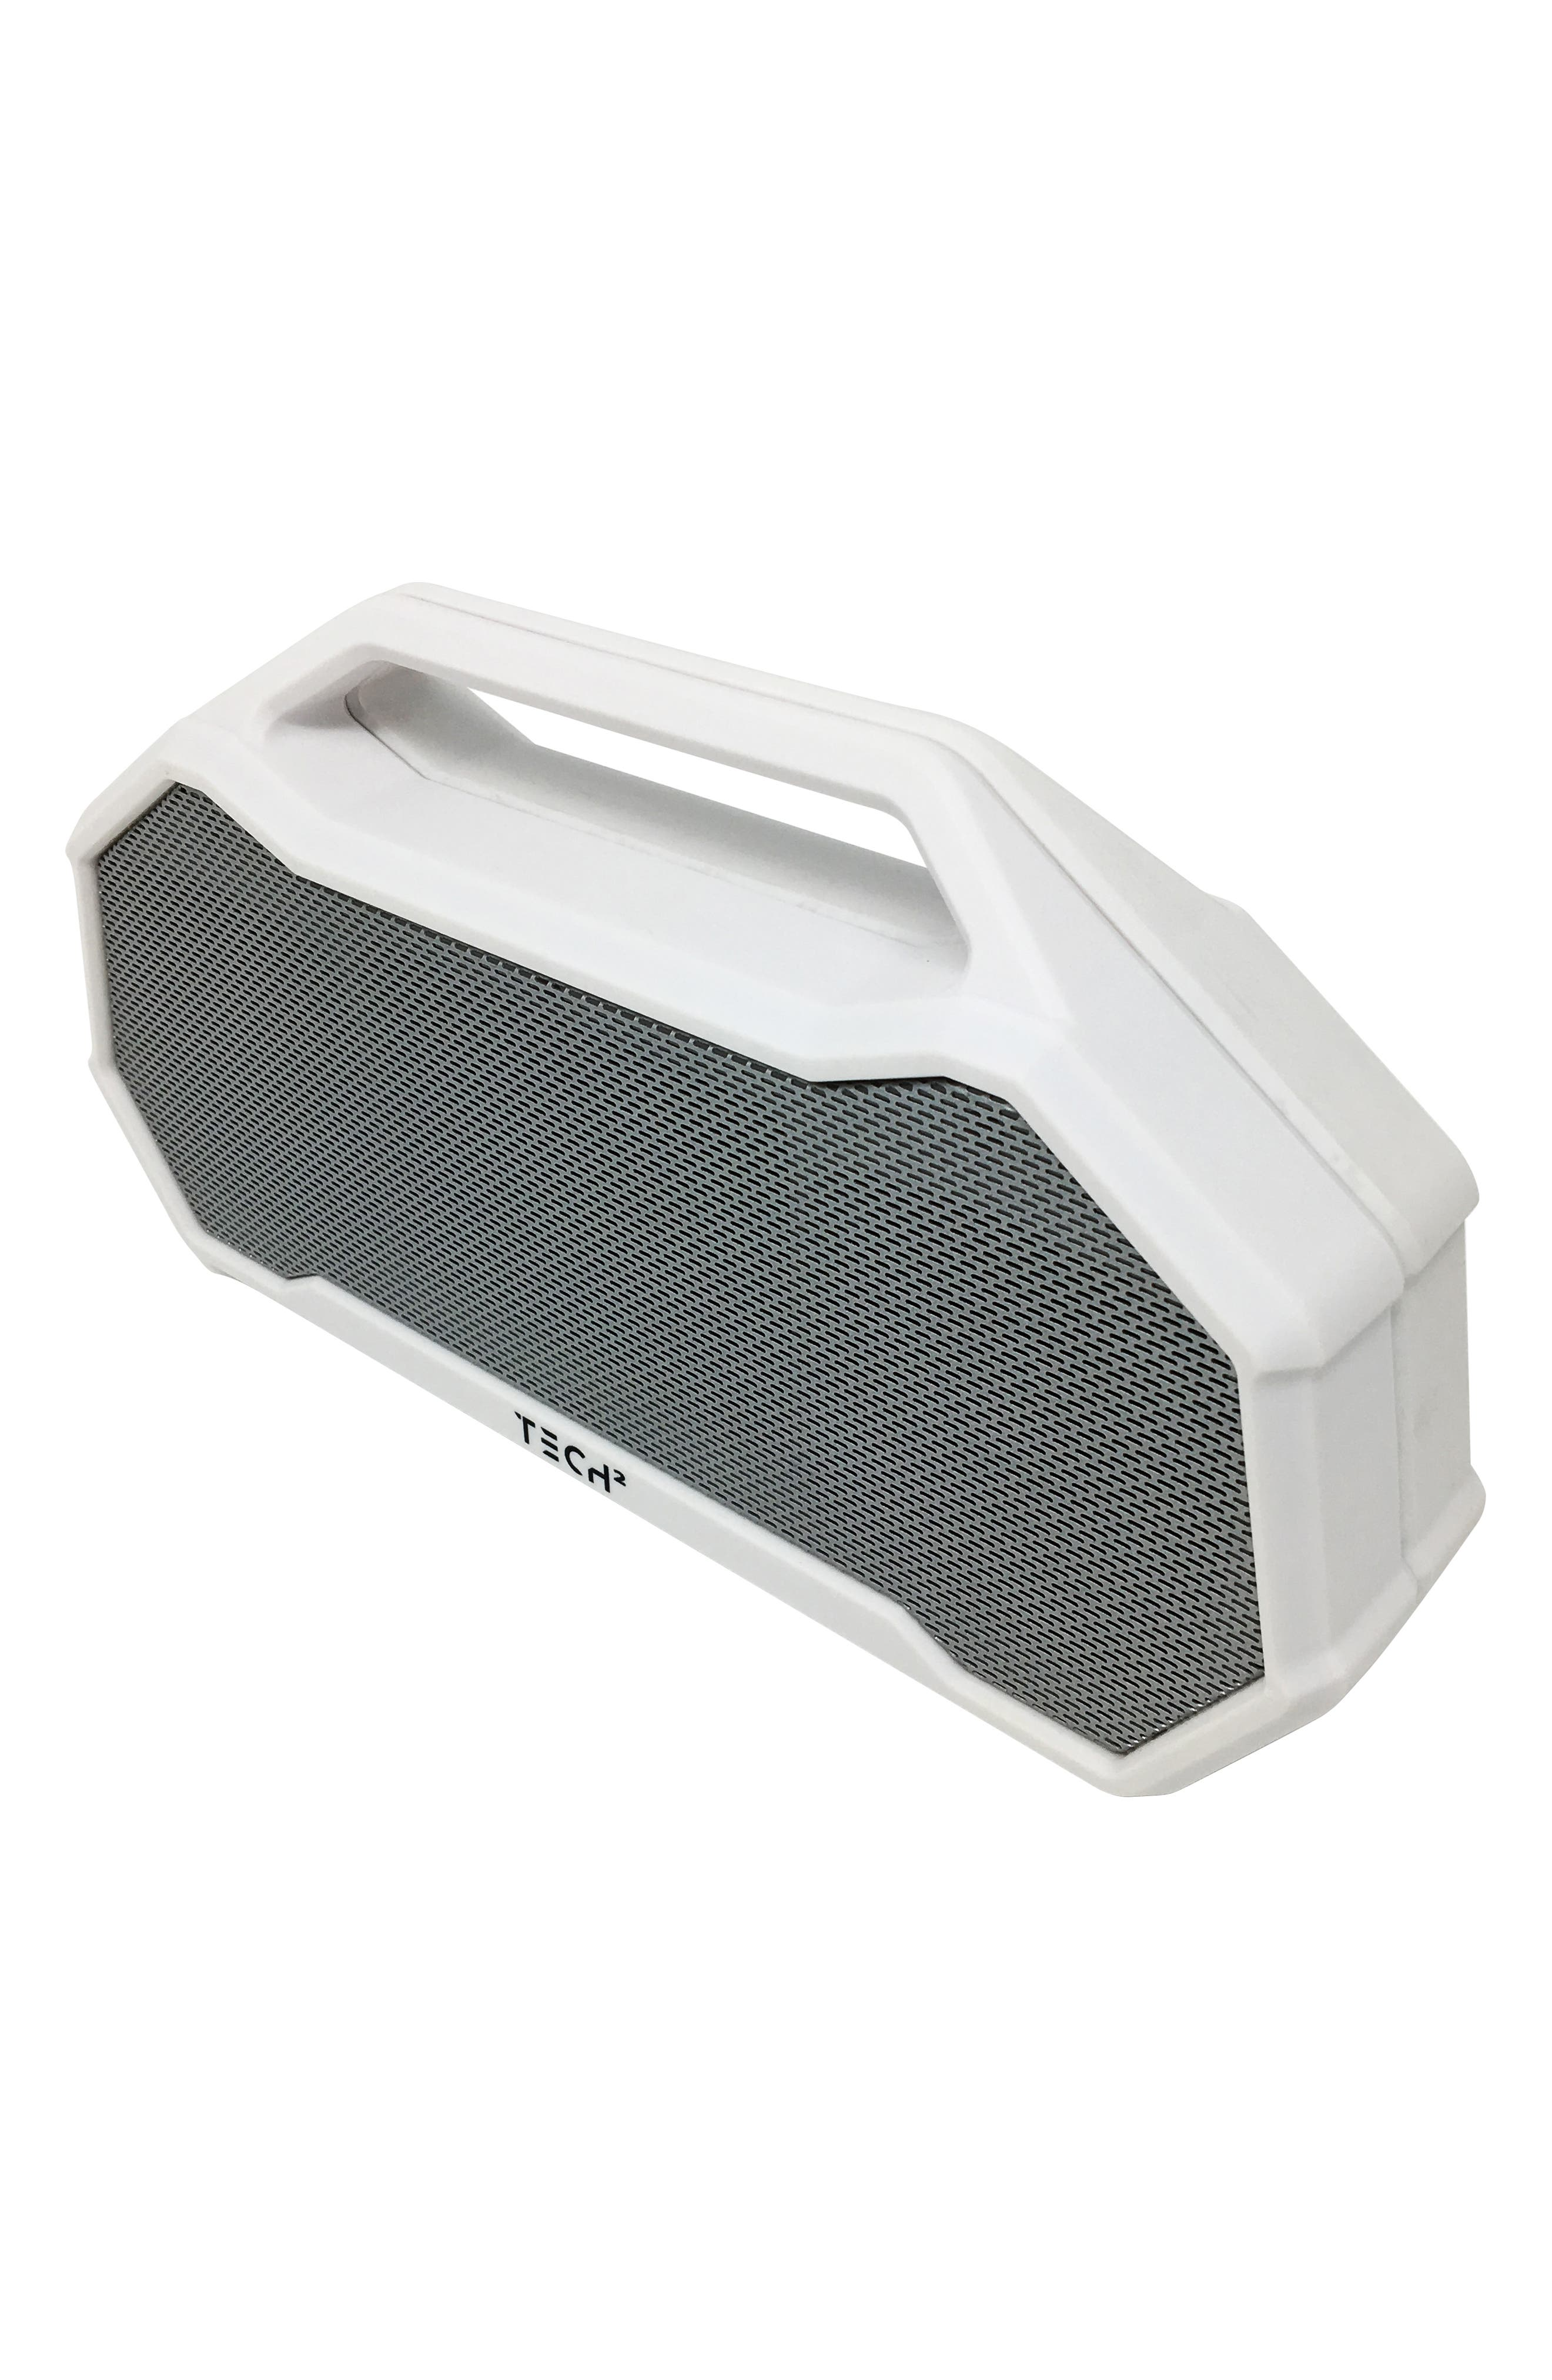 TECH2,                             Extreme Splashproof Wireless Bluetooth<sup>®</sup> Speaker,                             Alternate thumbnail 3, color,                             040